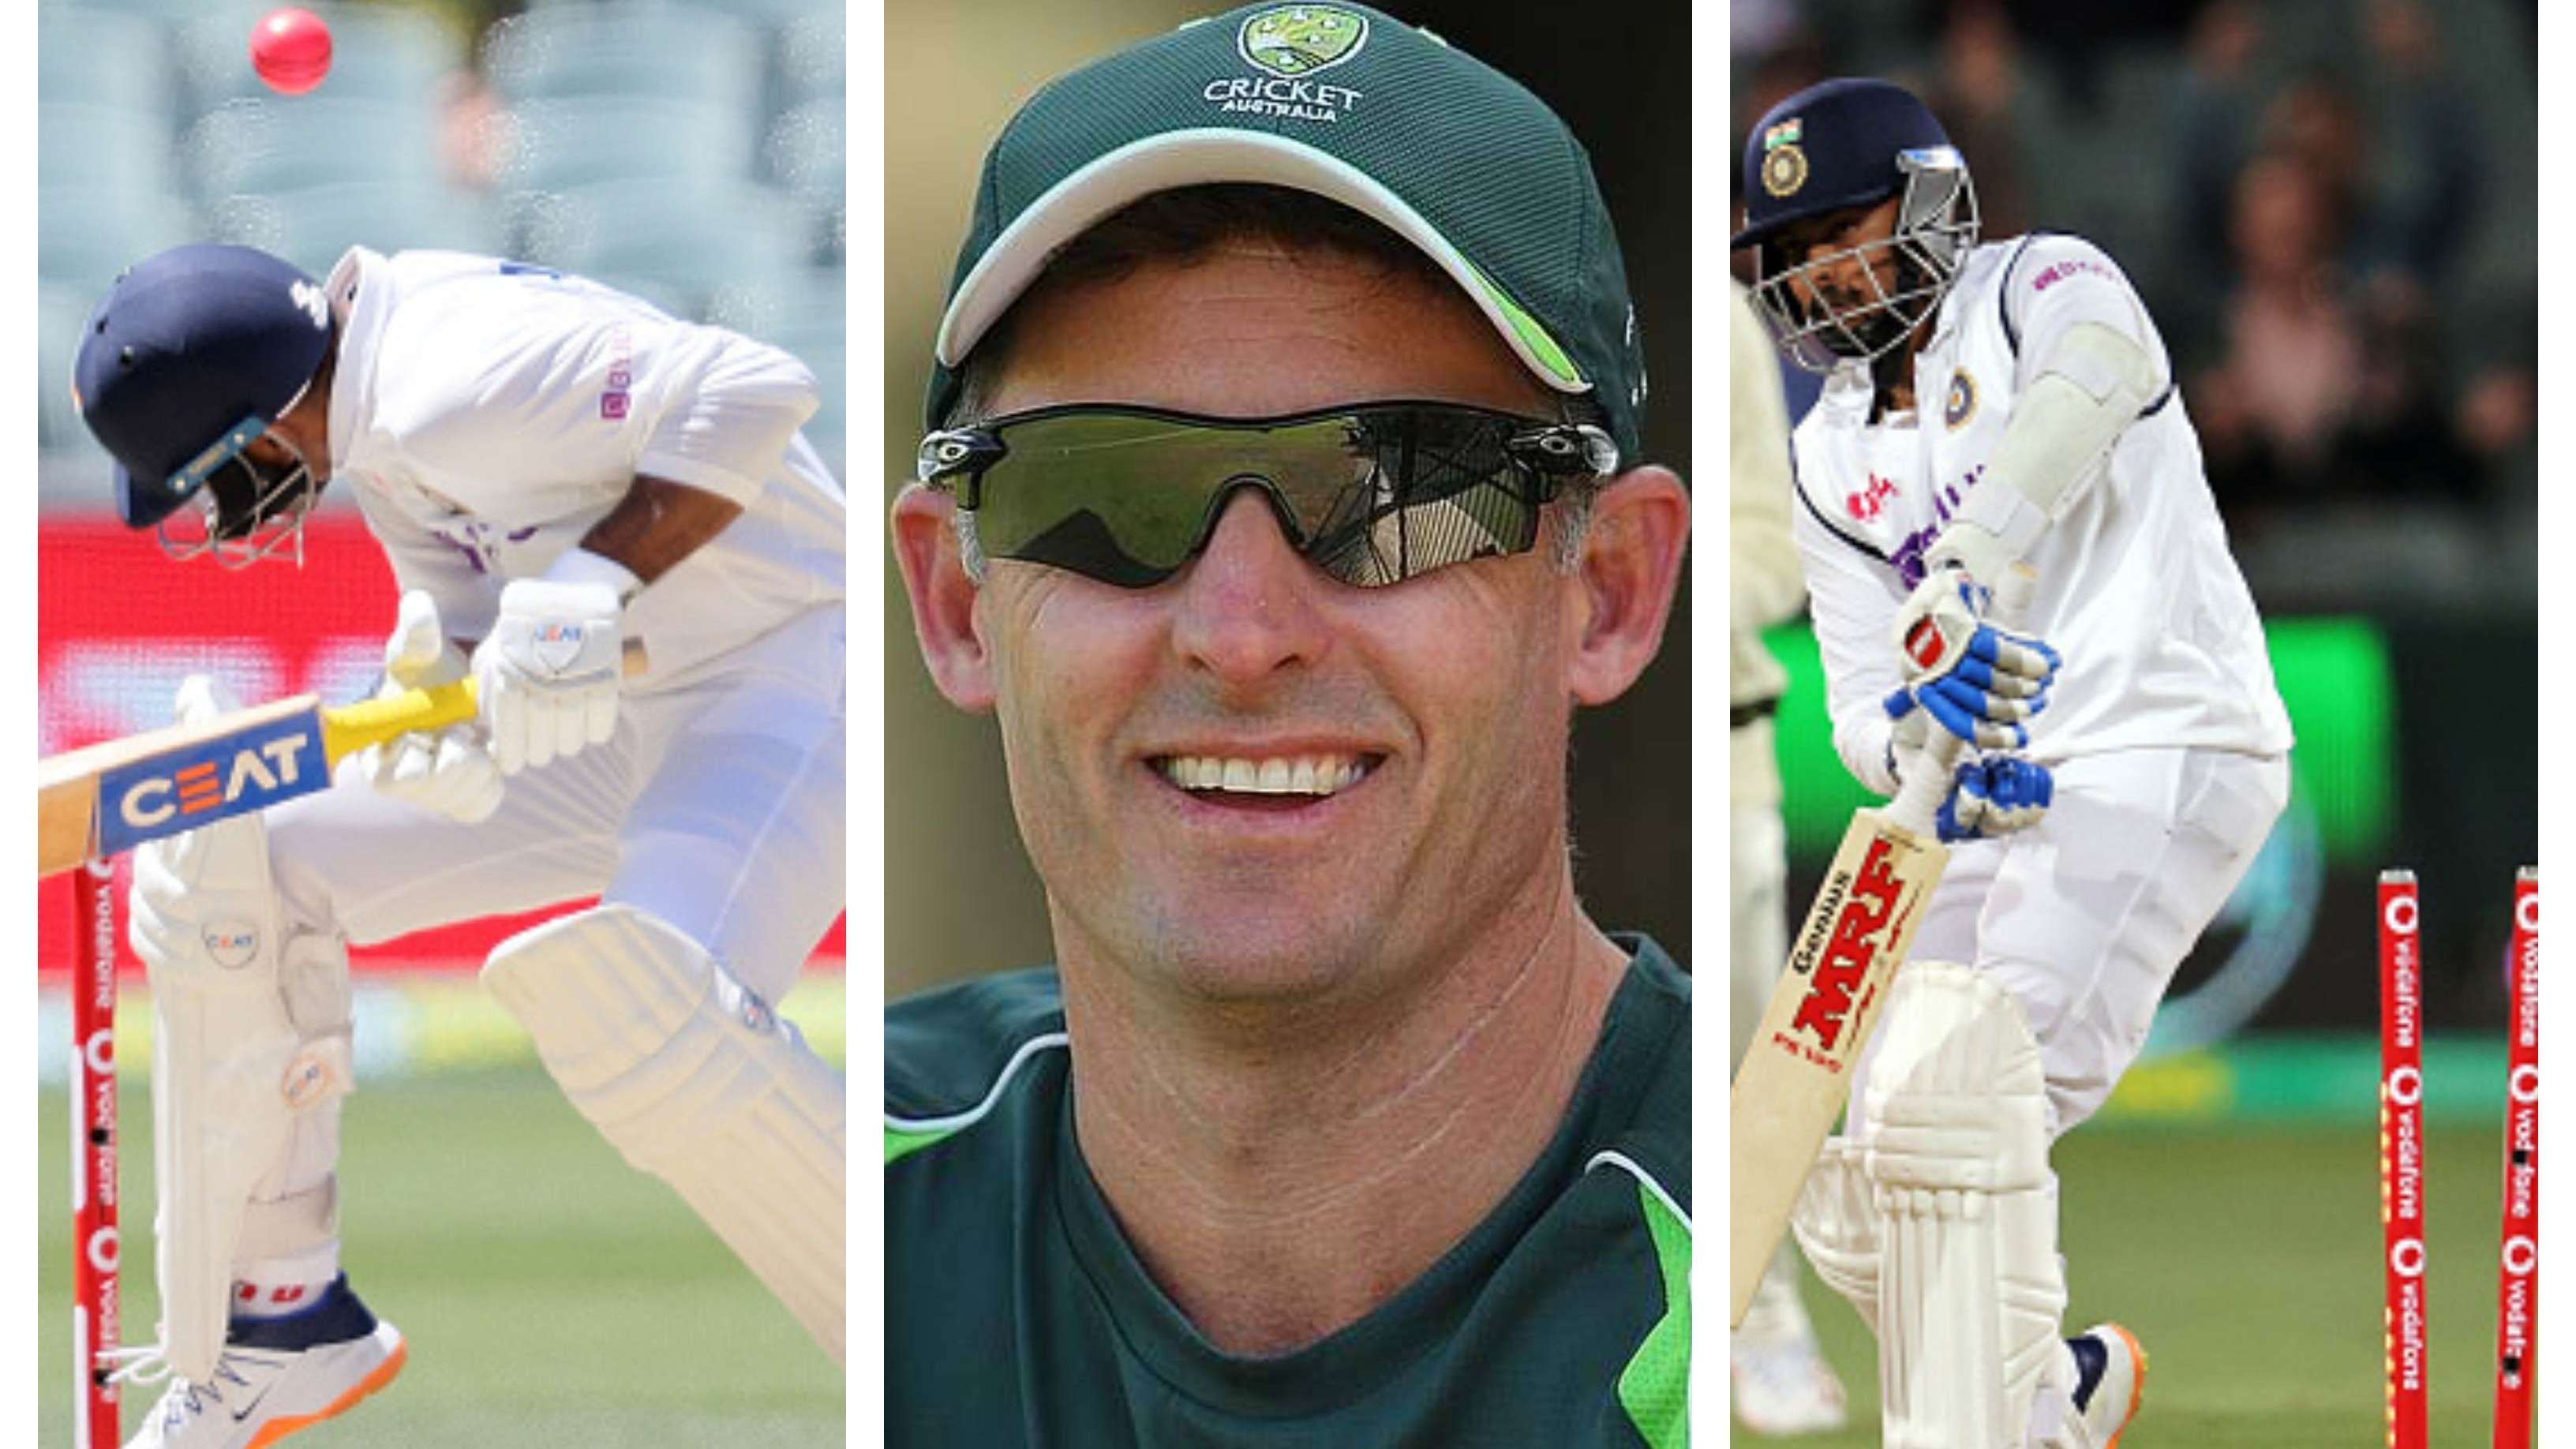 AUS v IND 2020-21: Michael Hussey weighs in over India's abysmal batting performance in Adelaide Test